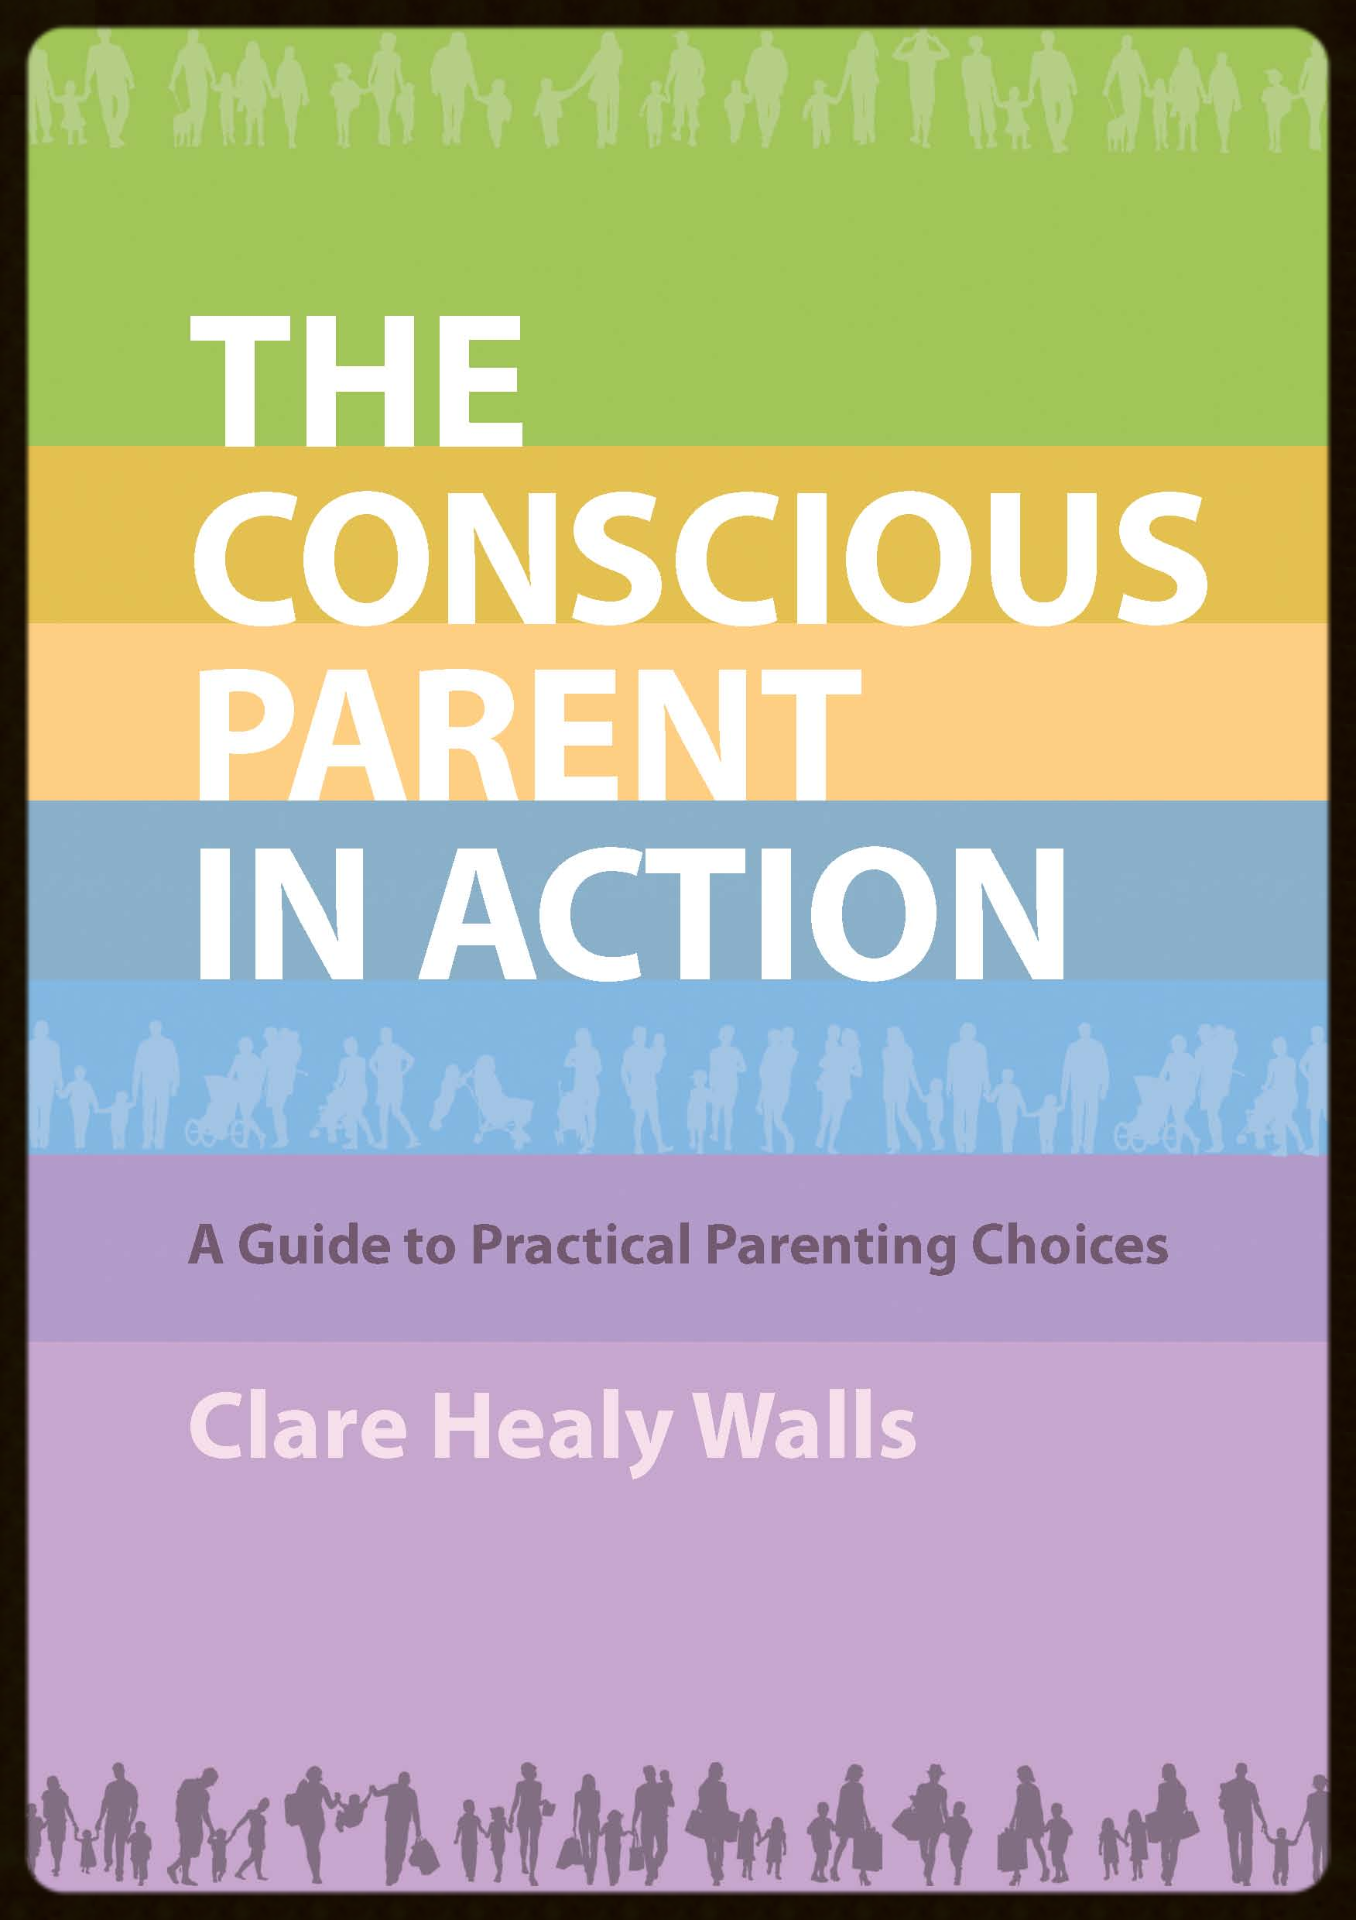 The Conscious Parent in Action